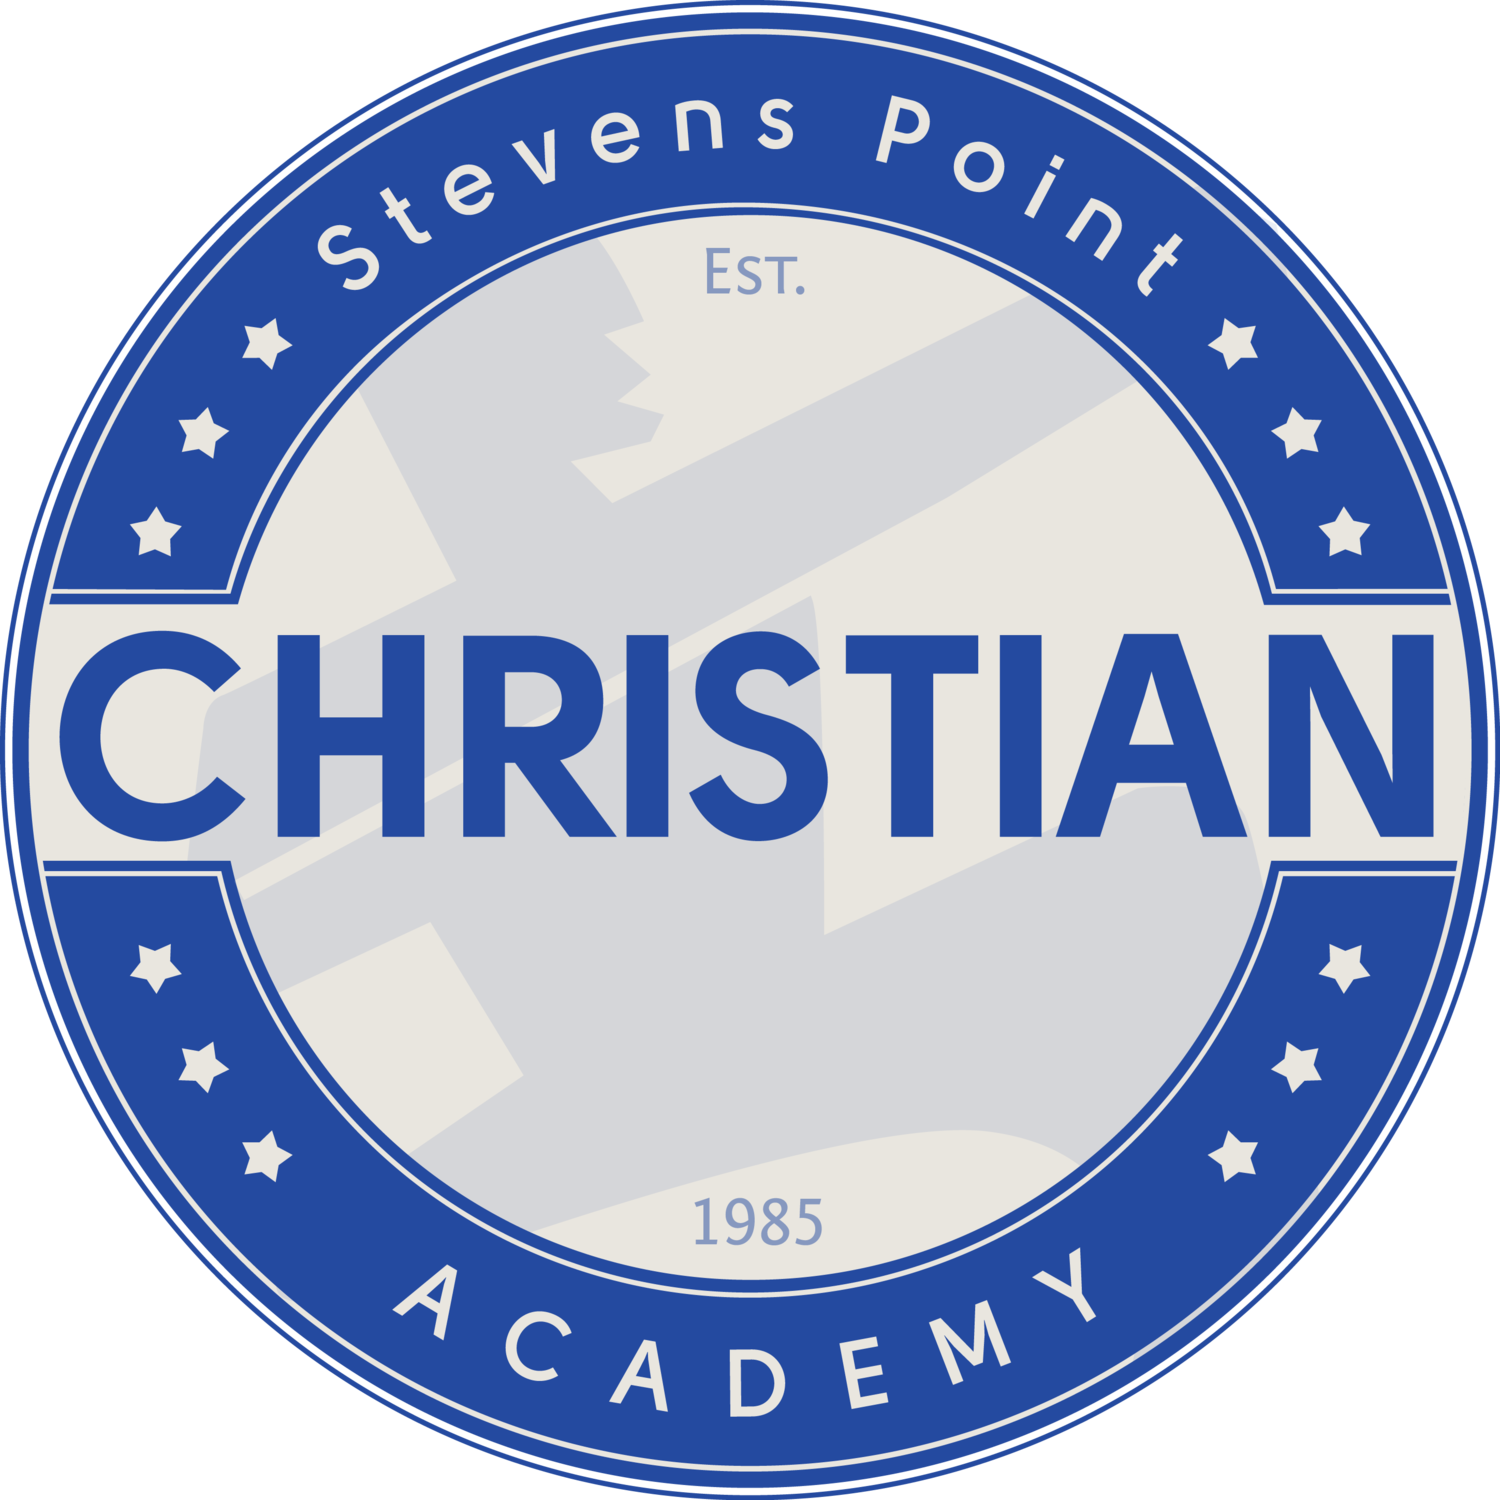 Stevens Point Christian Academy